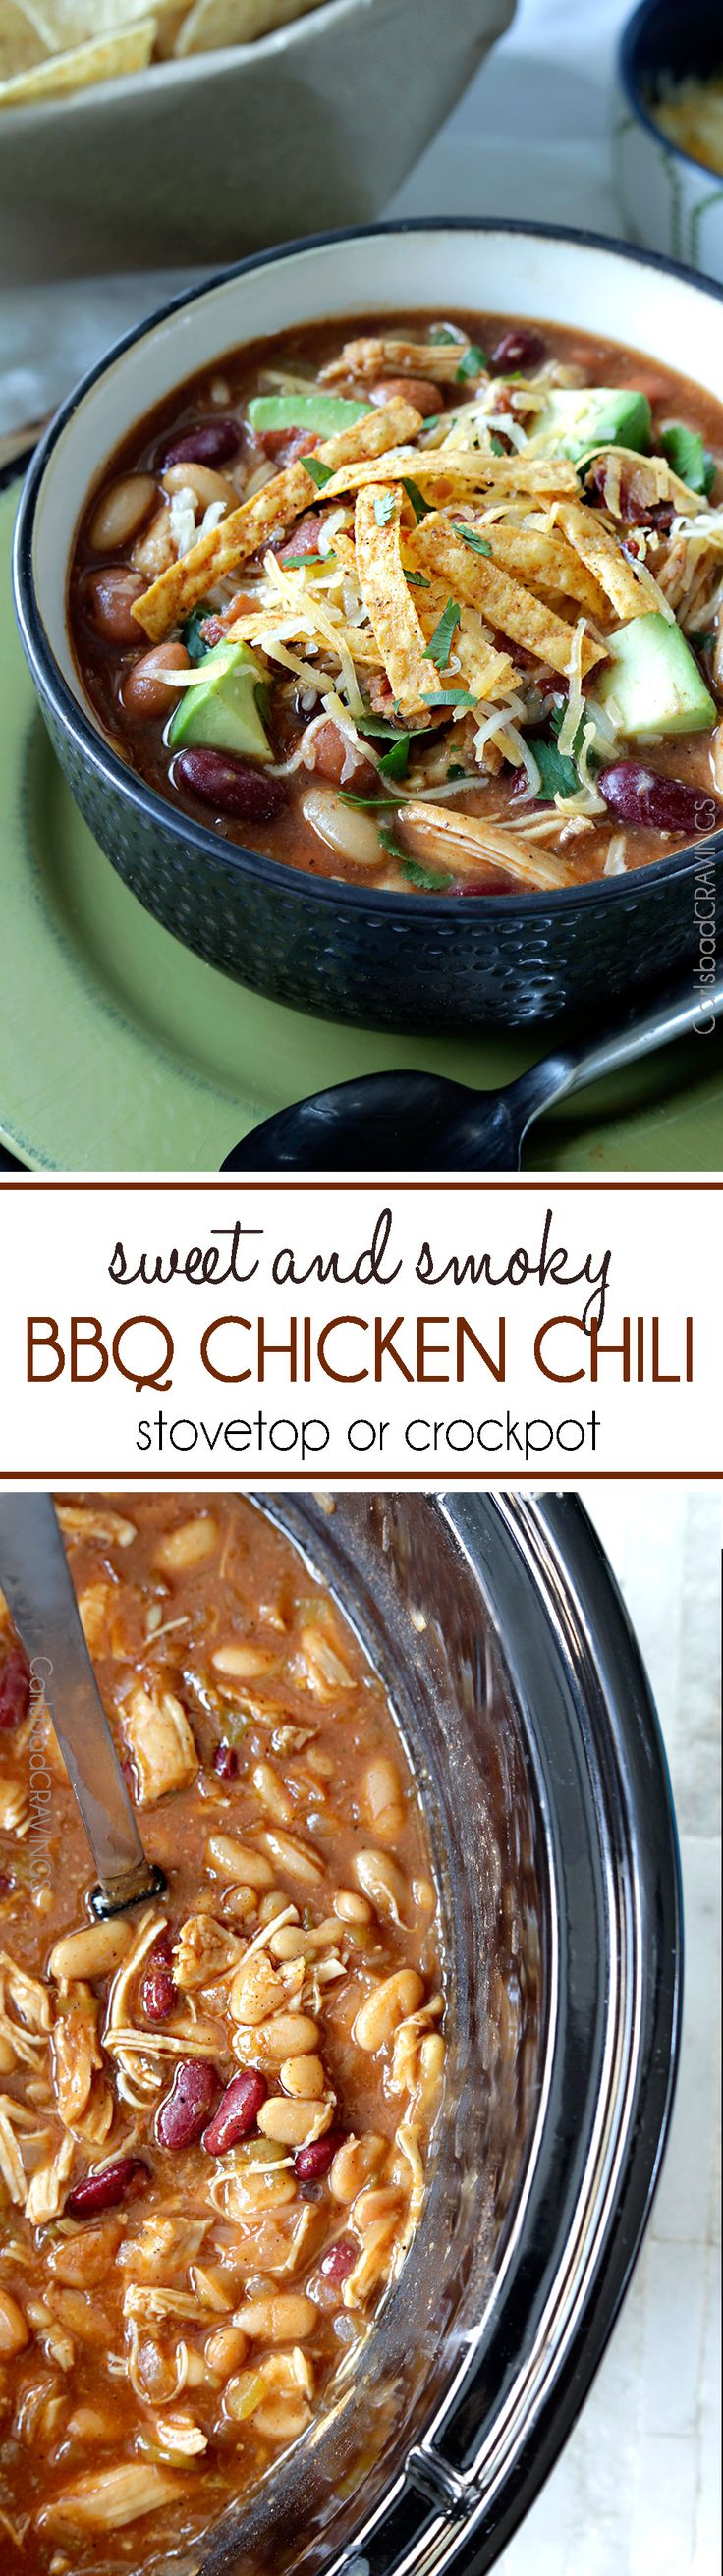 animal print shoes nordstrom so easy and delicious we had this for Christmas  Sweet and Smoky BBQ Chicken Chili is guaranteed to become a family fav  Easy to make in the crockpot or stovetop   chili  chickenchili  BBQ  BBQchickenchili  crockpot